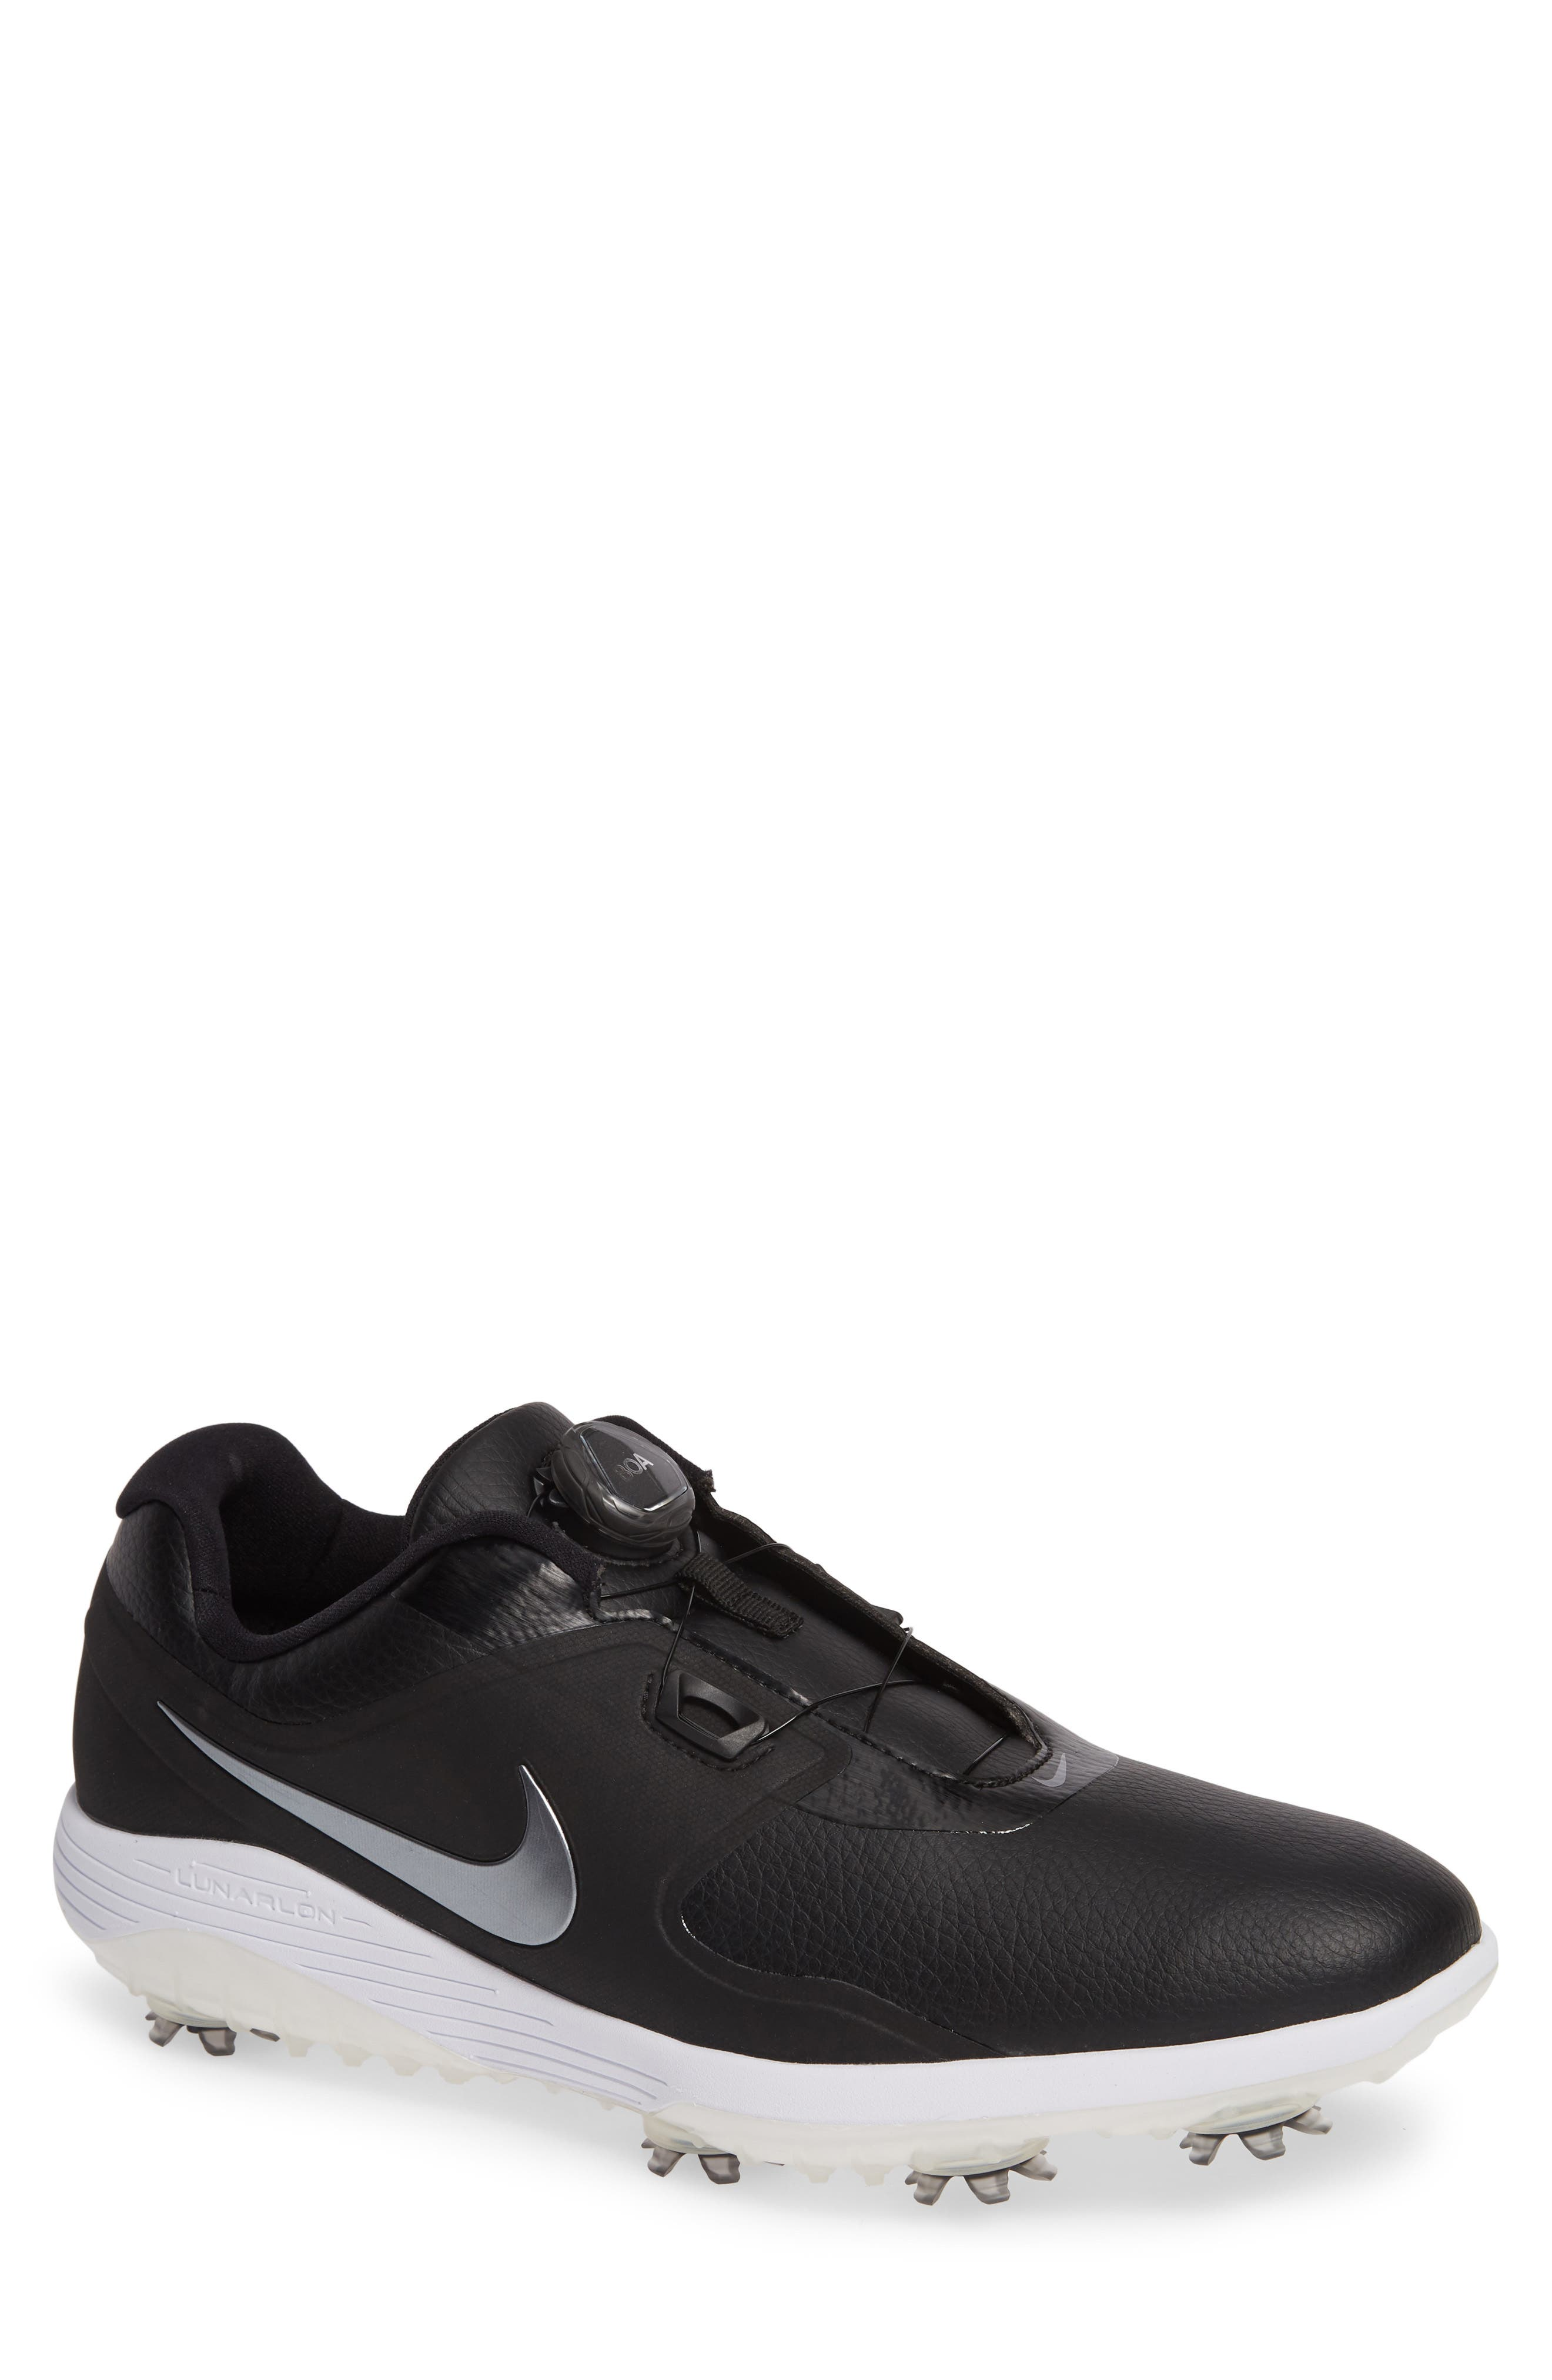 NIKE Vapor Pro BOA Waterproof Golf Shoe, Main, color, BLACK/ COOL GREY/ WHITE